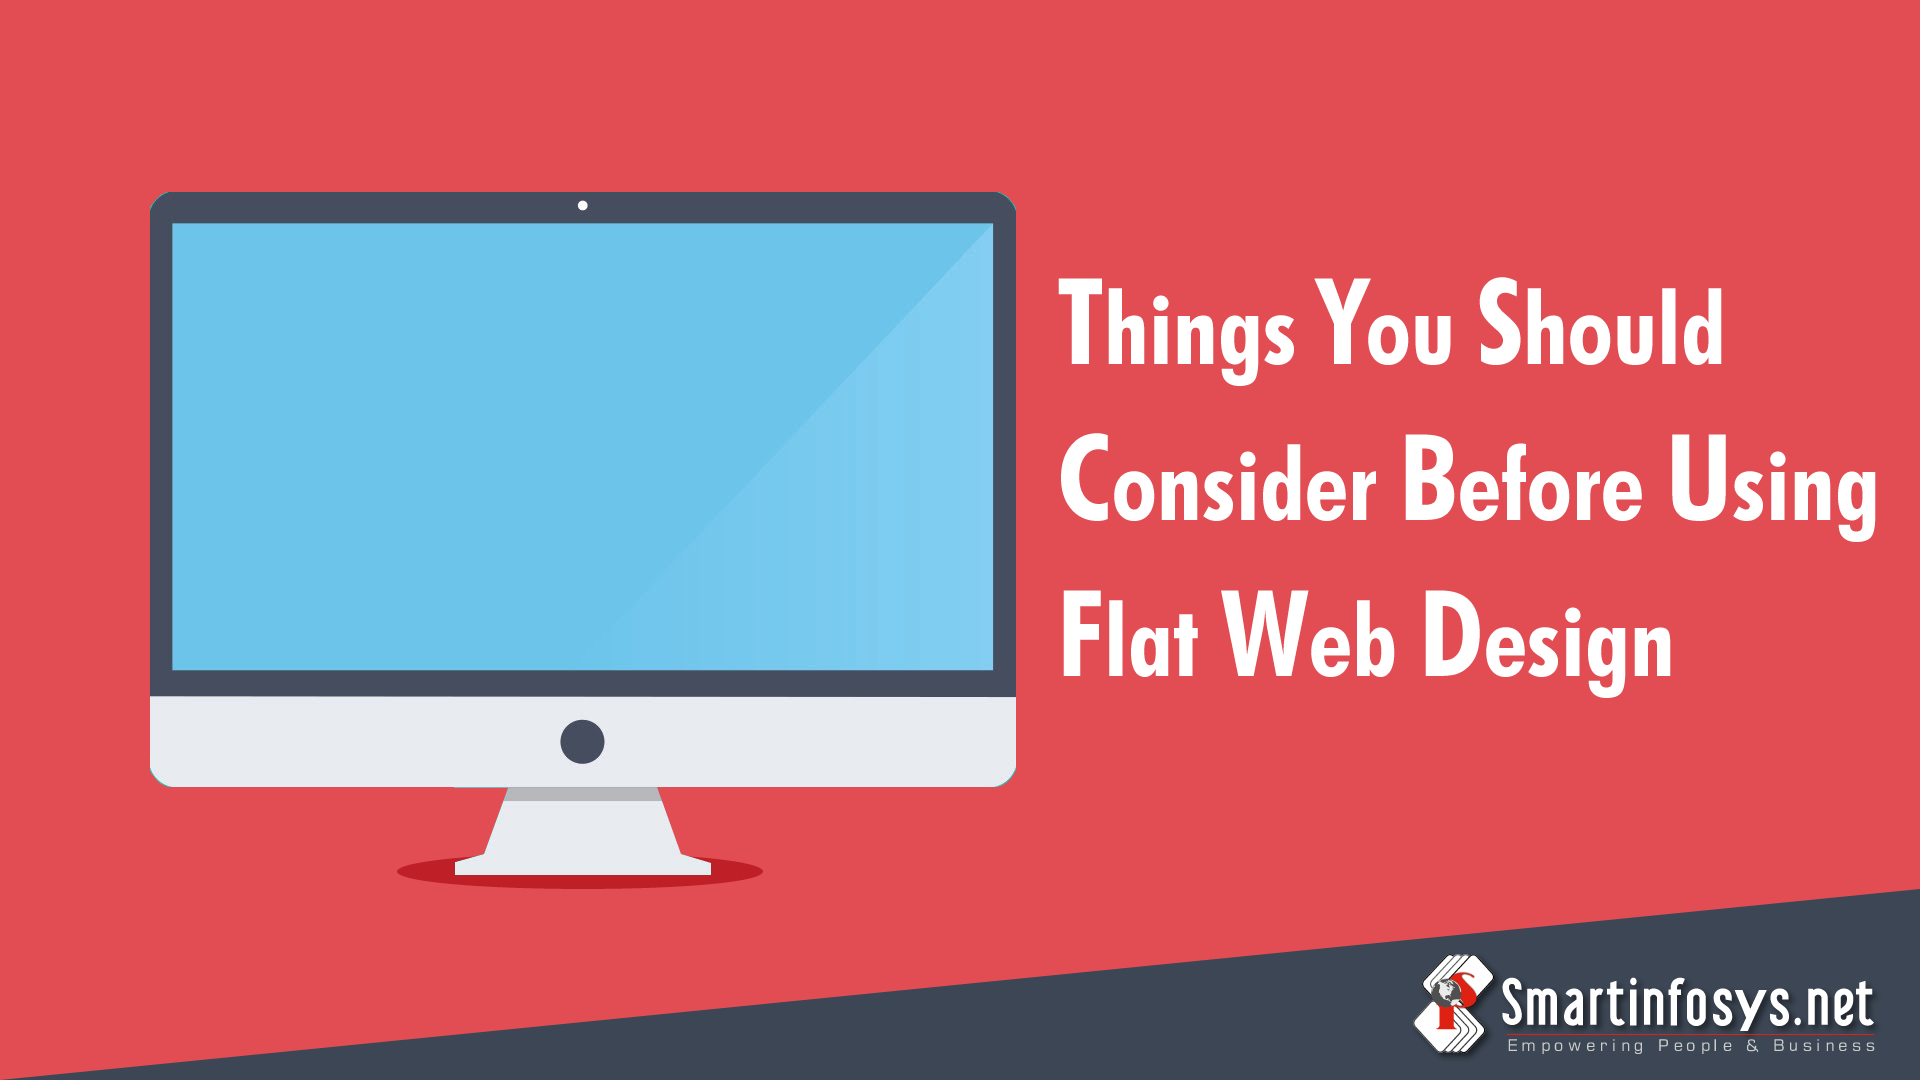 Things You Should Consider Before Using Flat Web Design